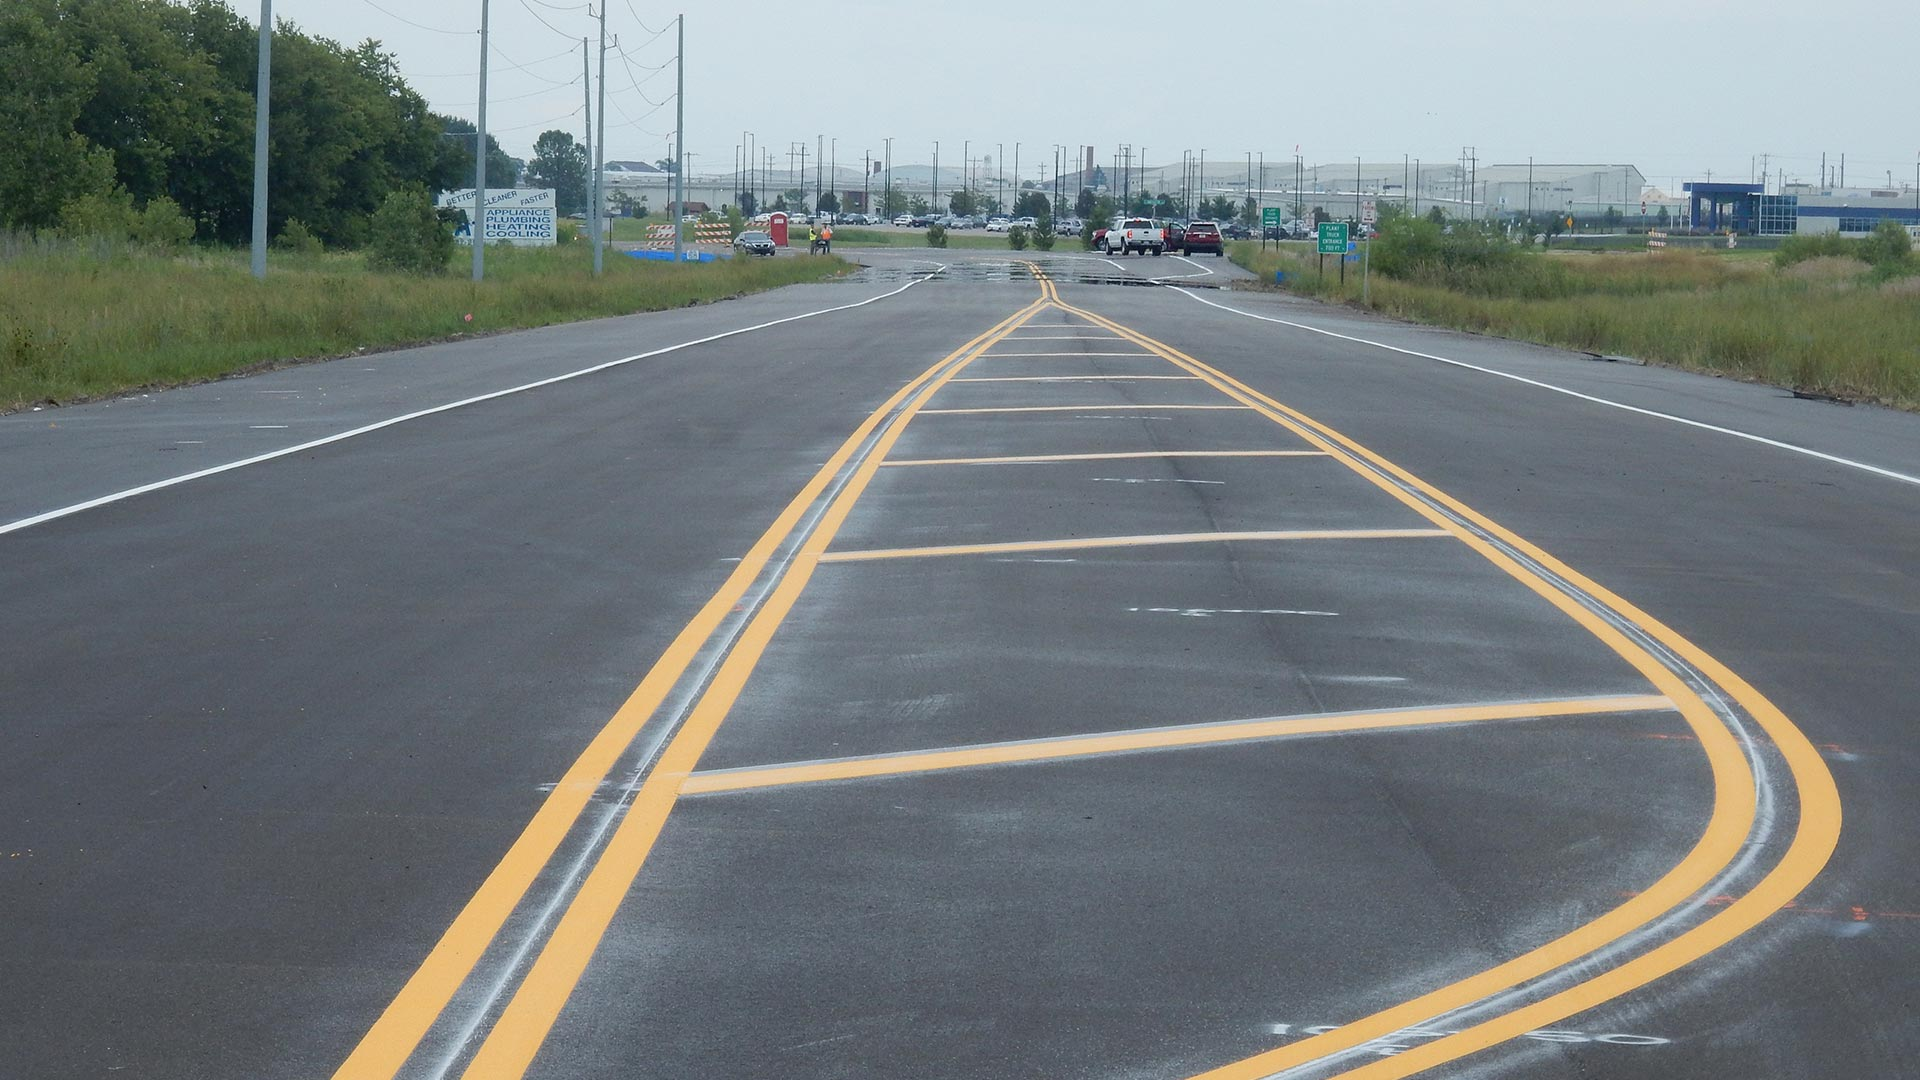 SBB Engineering Gary Ornsby Drive Featured Project Image 3